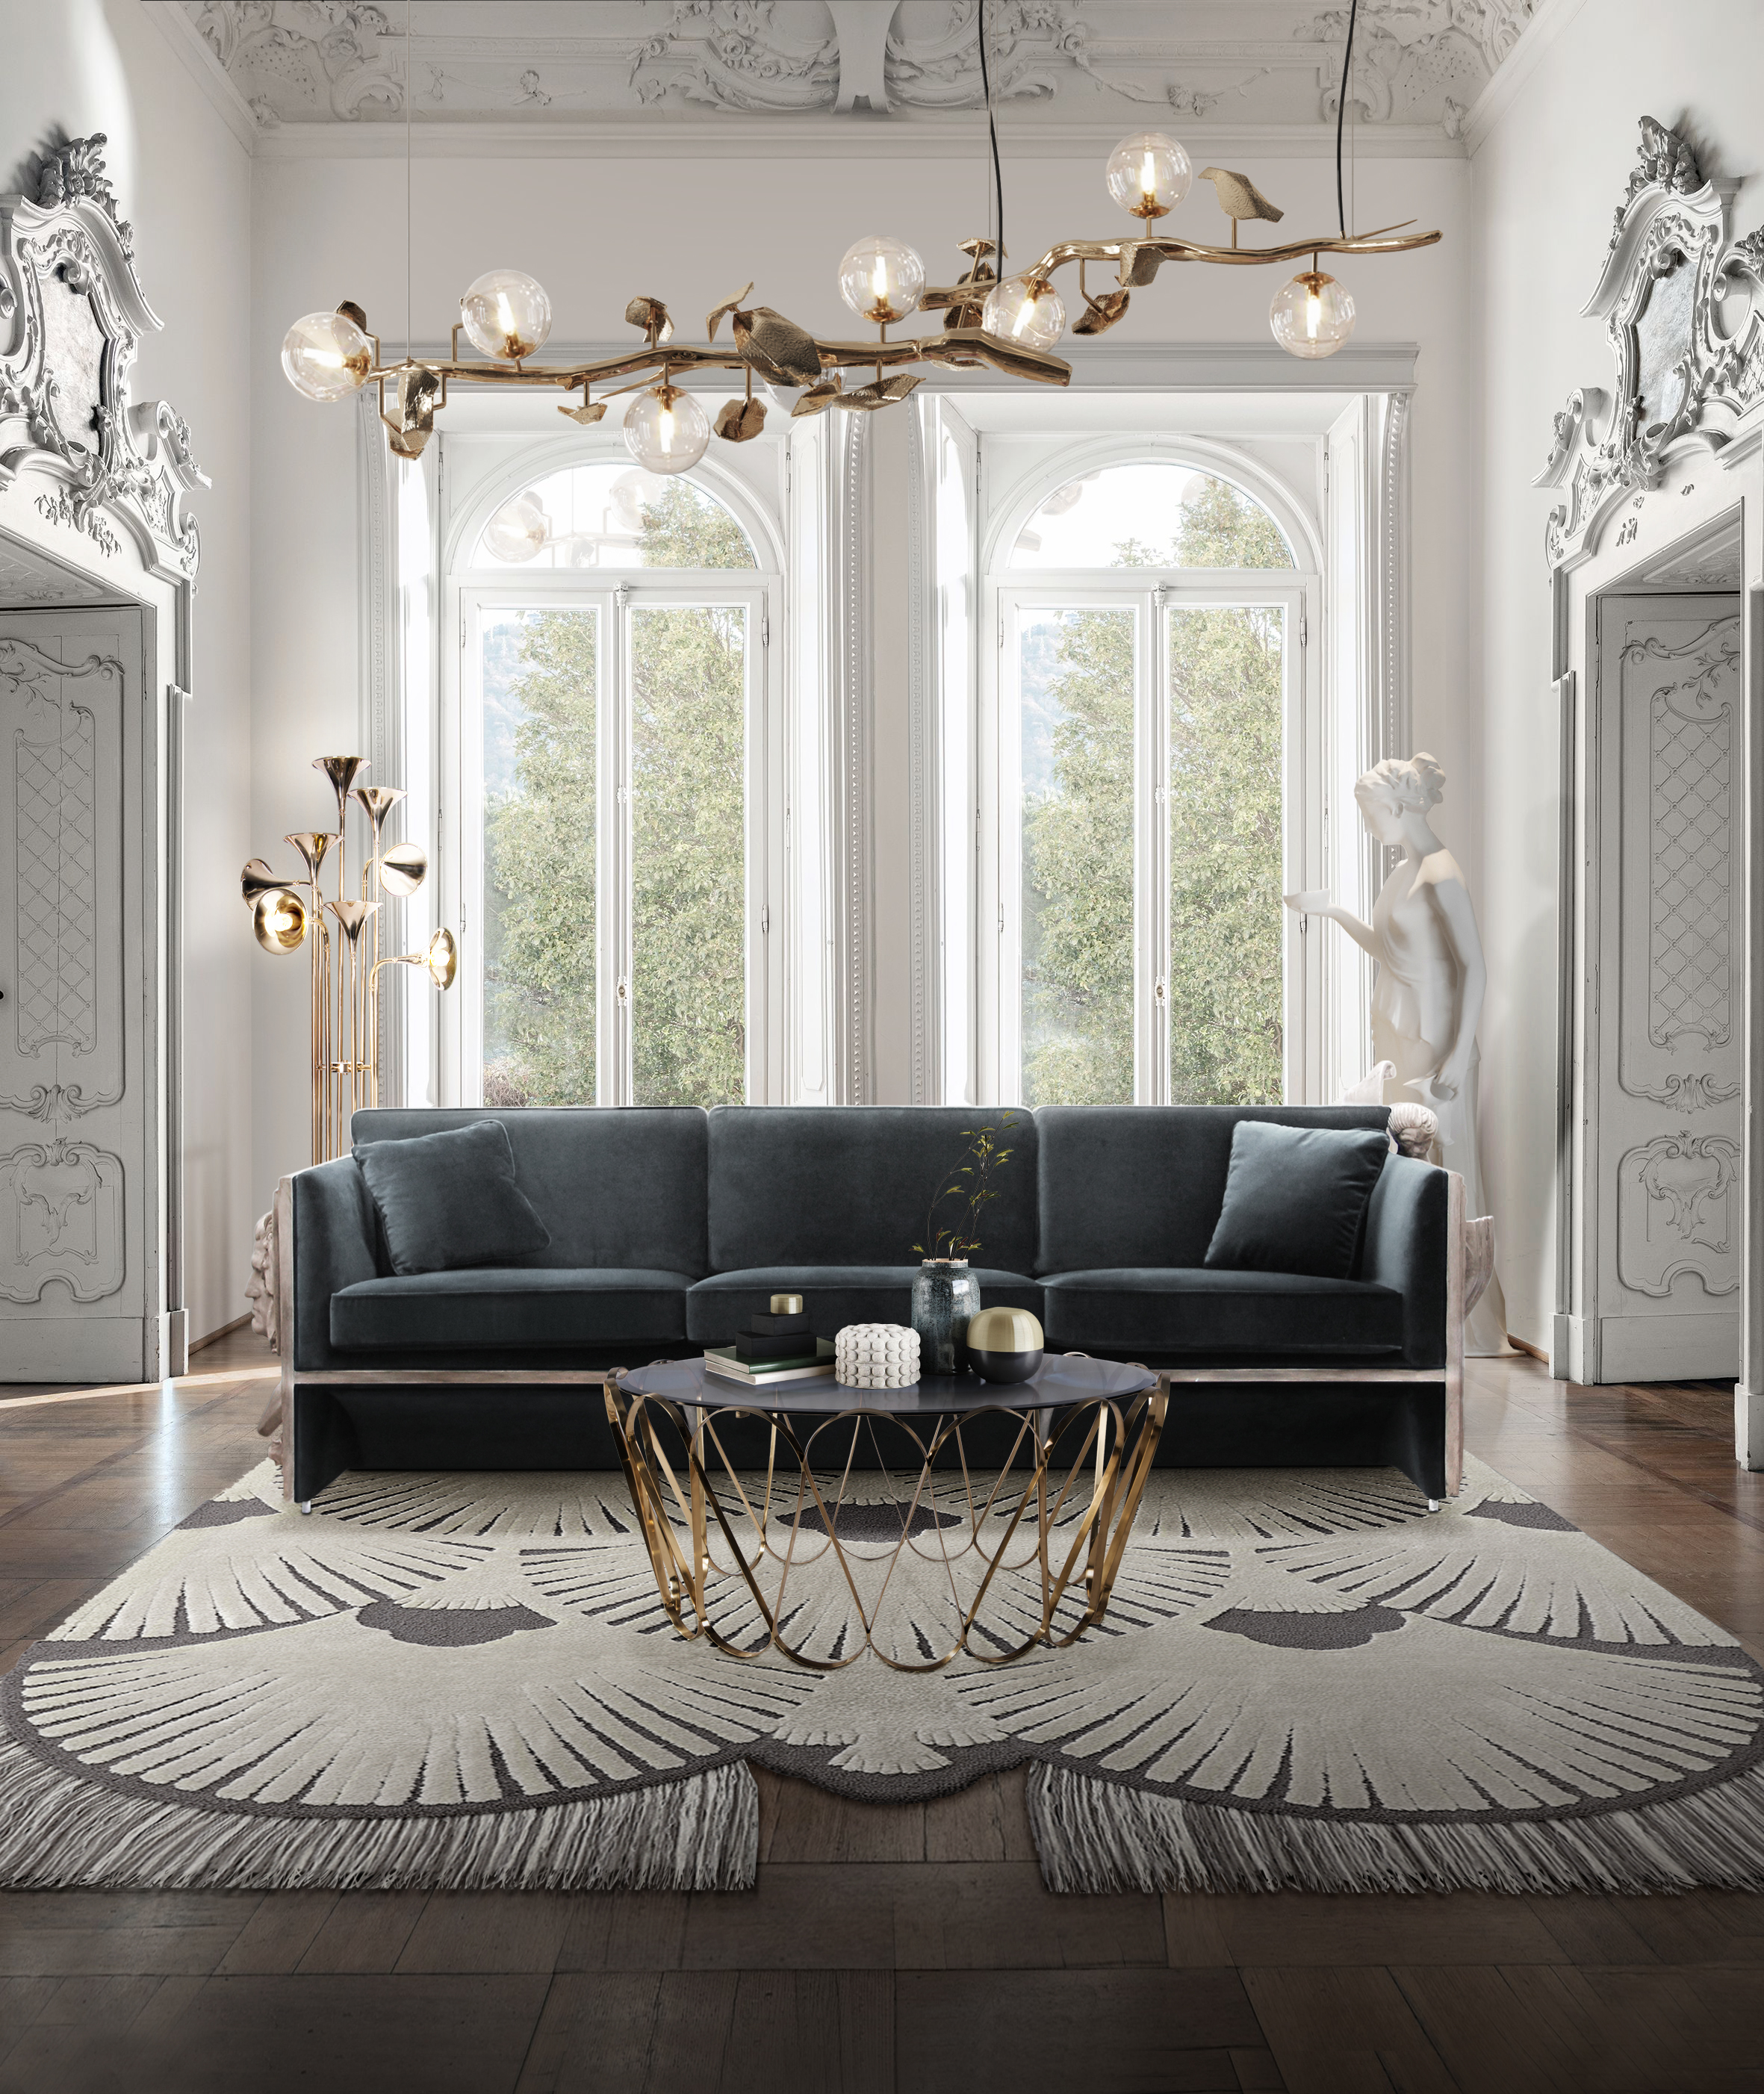 living room ideas Living Room Ideas for You bl versailles luxury sofa